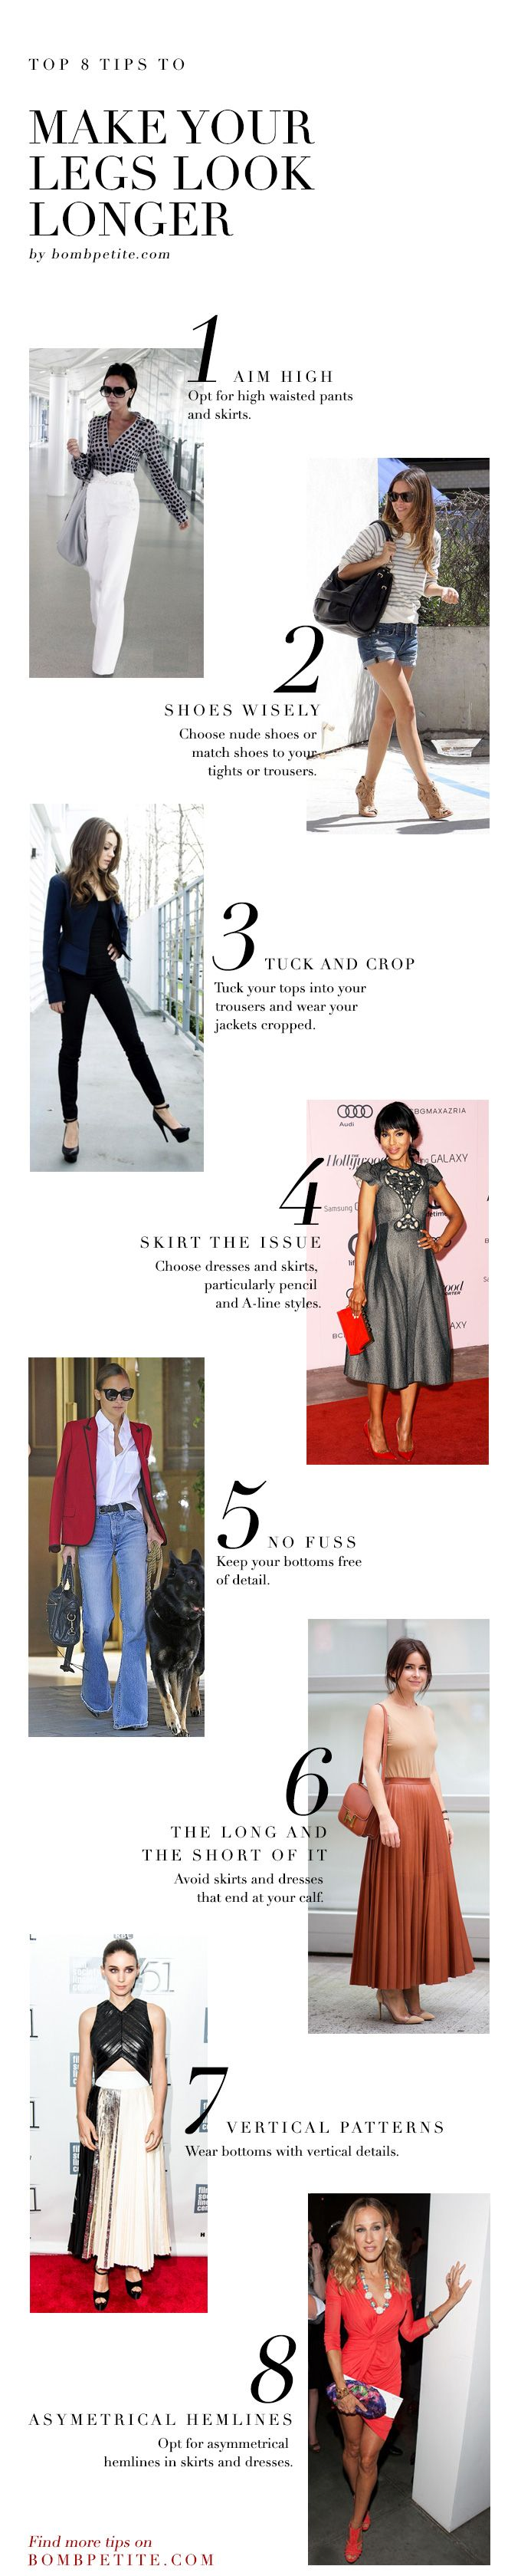 Top 8 Tips to Make your Legs look longer #stylingtips #outfitideas